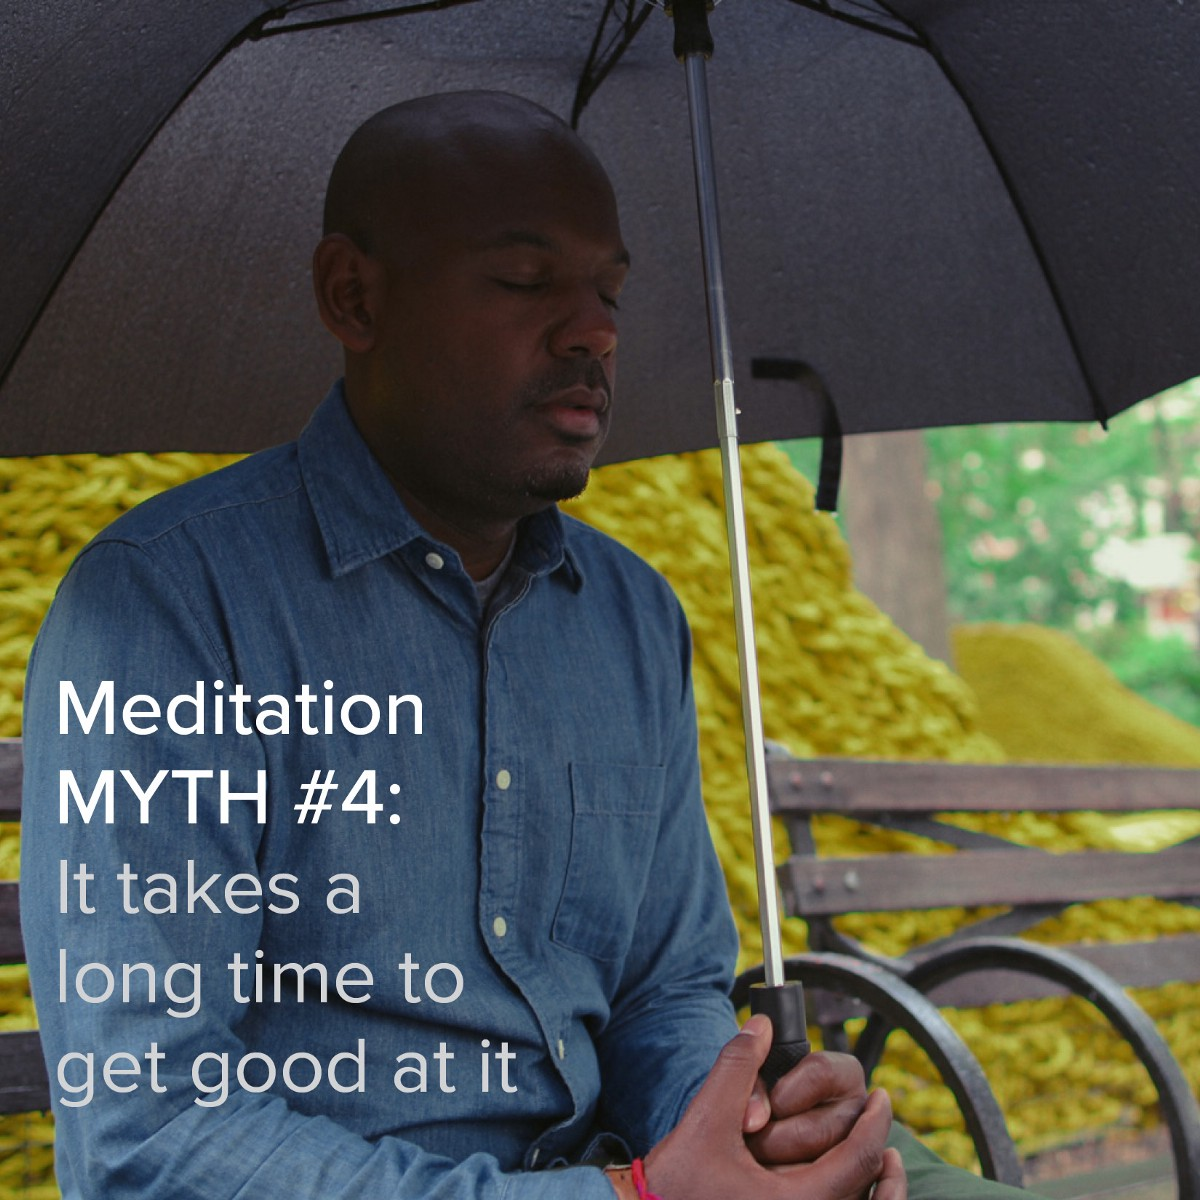 meditation-myth-4.jpeg